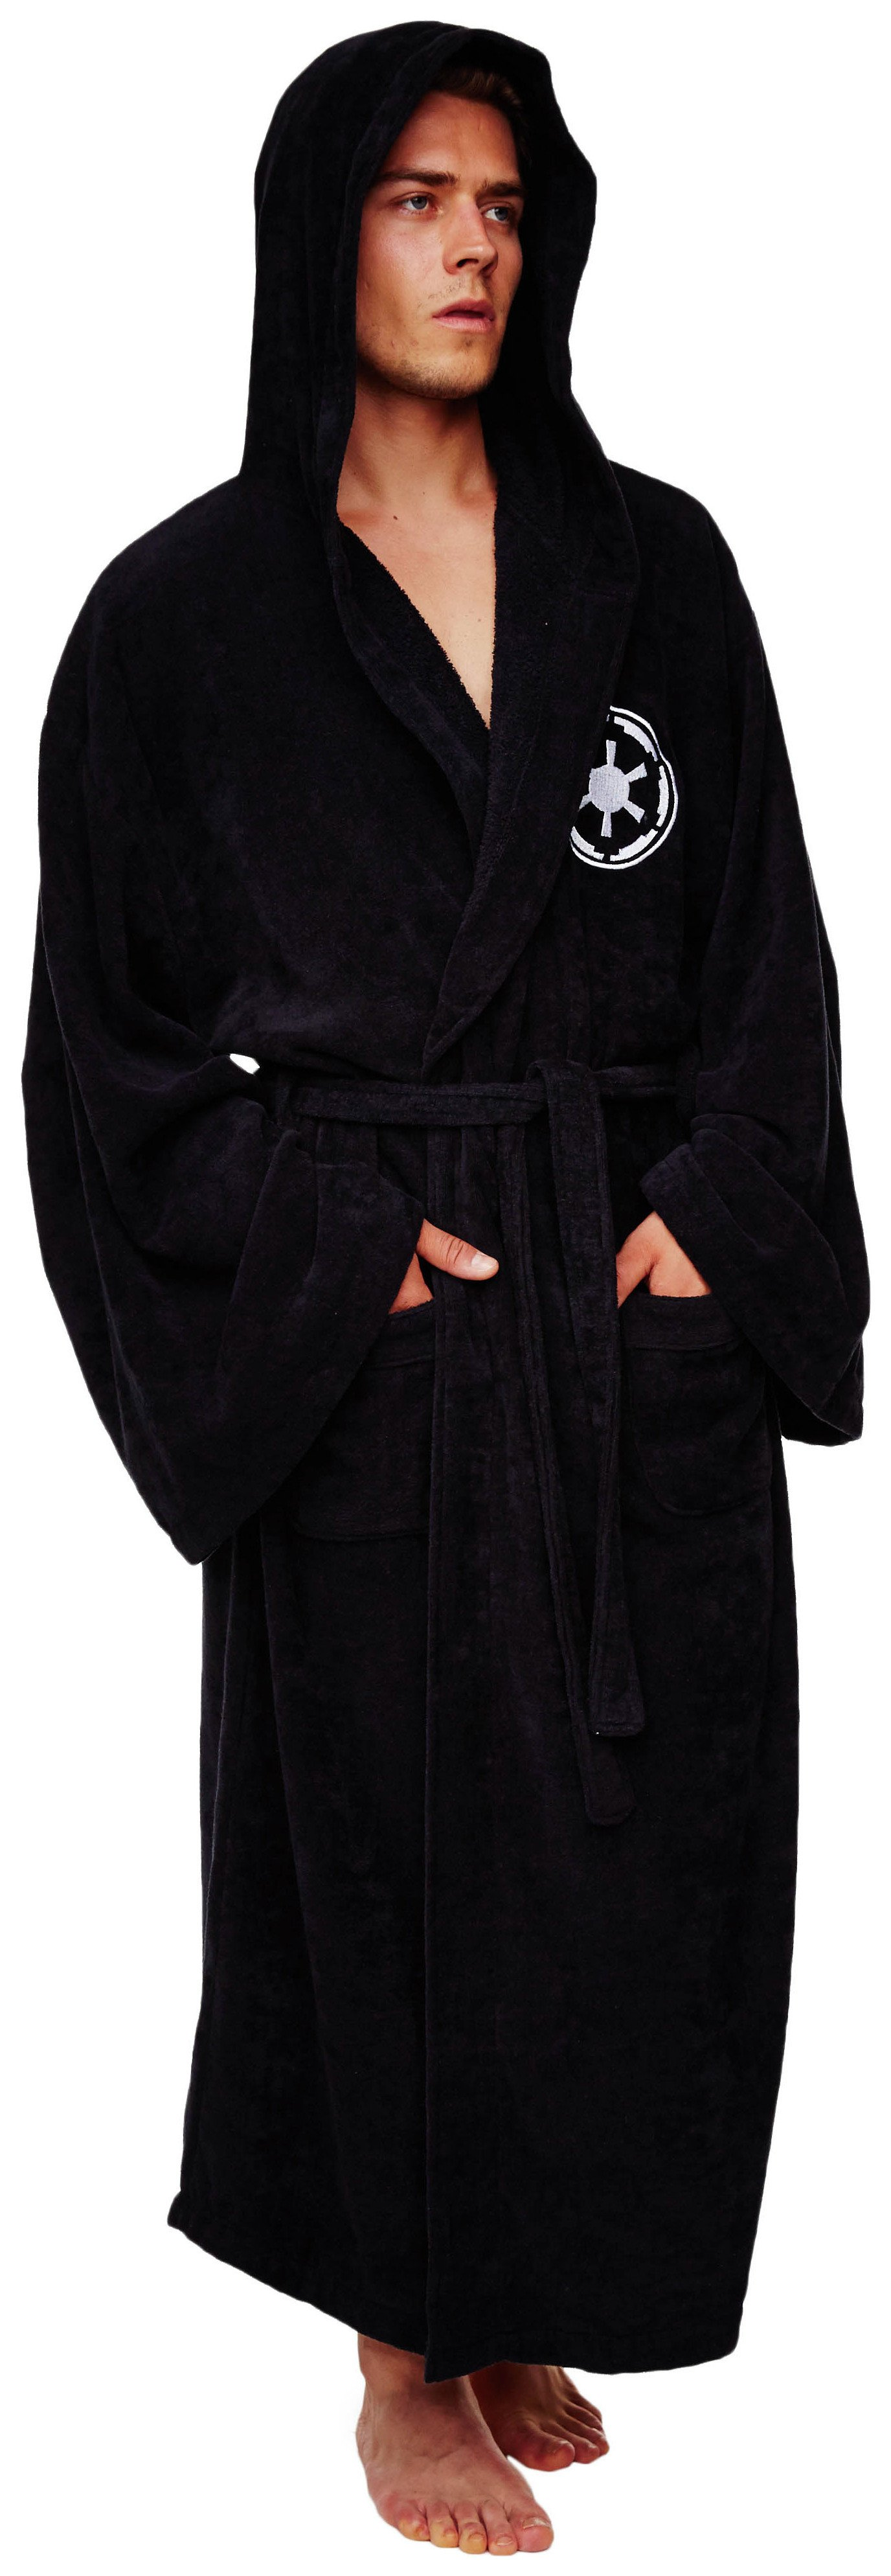 0e186be061 ... EAN 5055437901449 product image for Star Wars Galactic Empire Adult  Fleece Robe